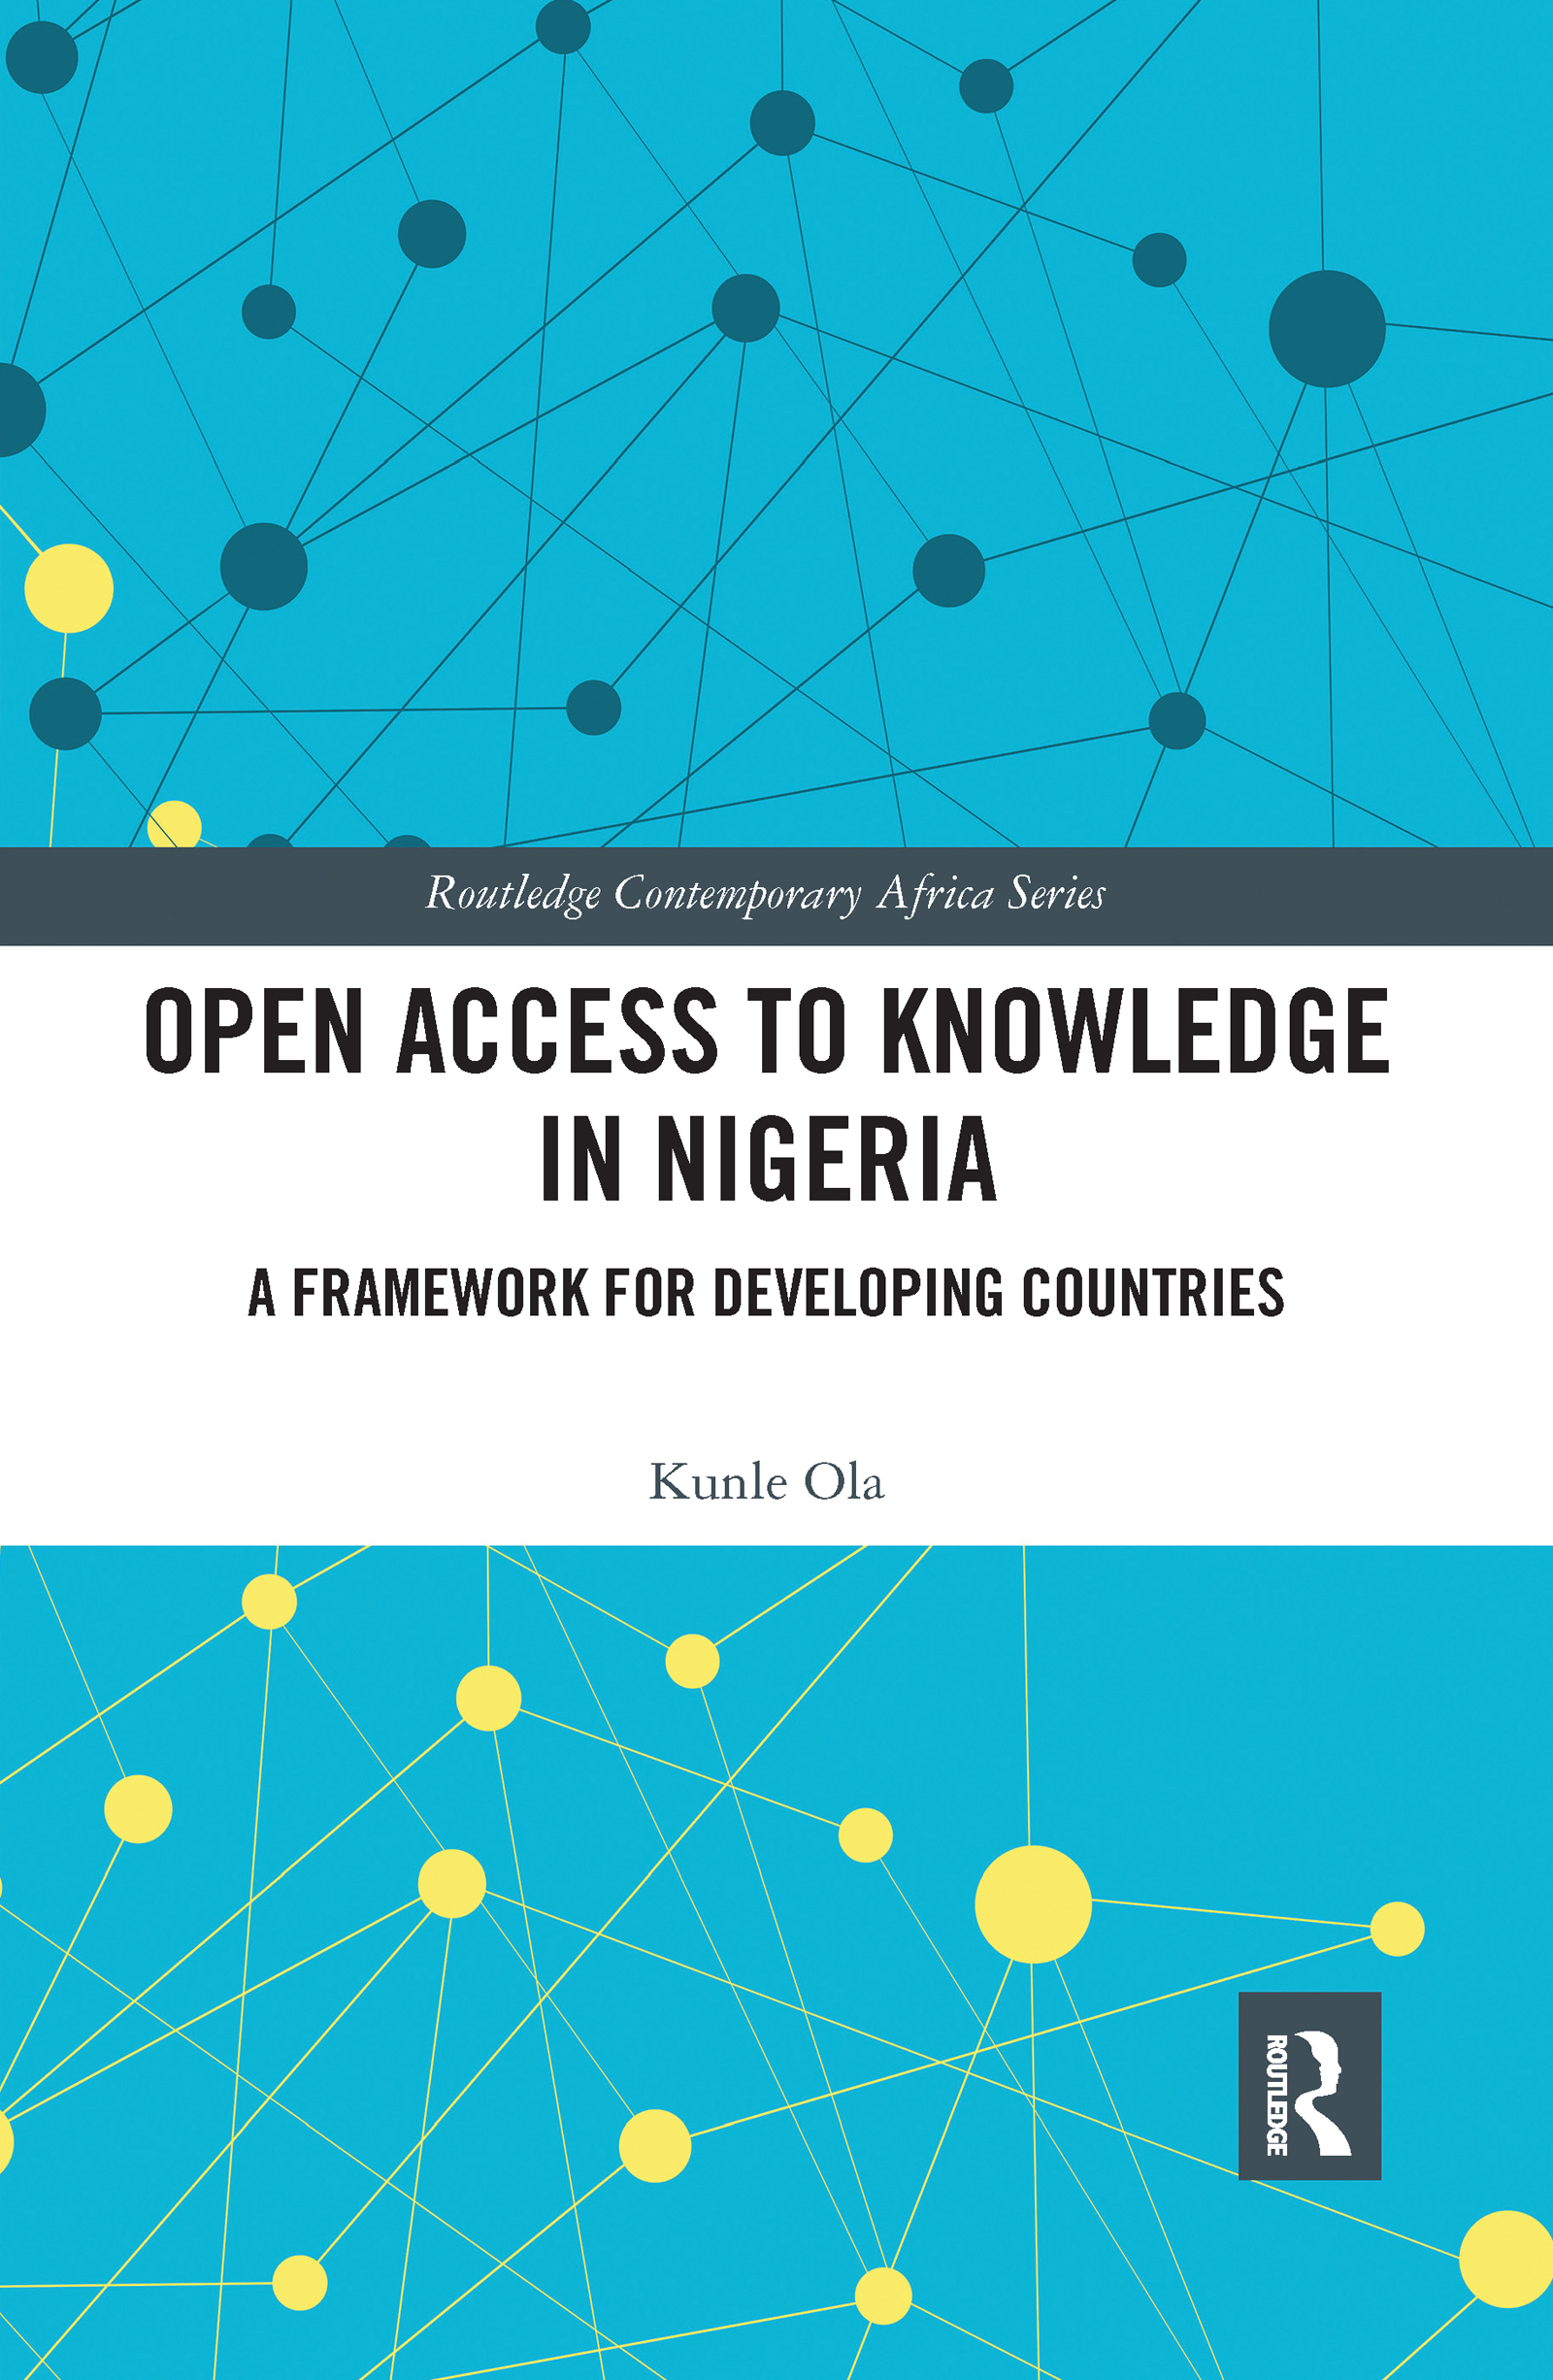 Open Access to Knowledge in Nigeria